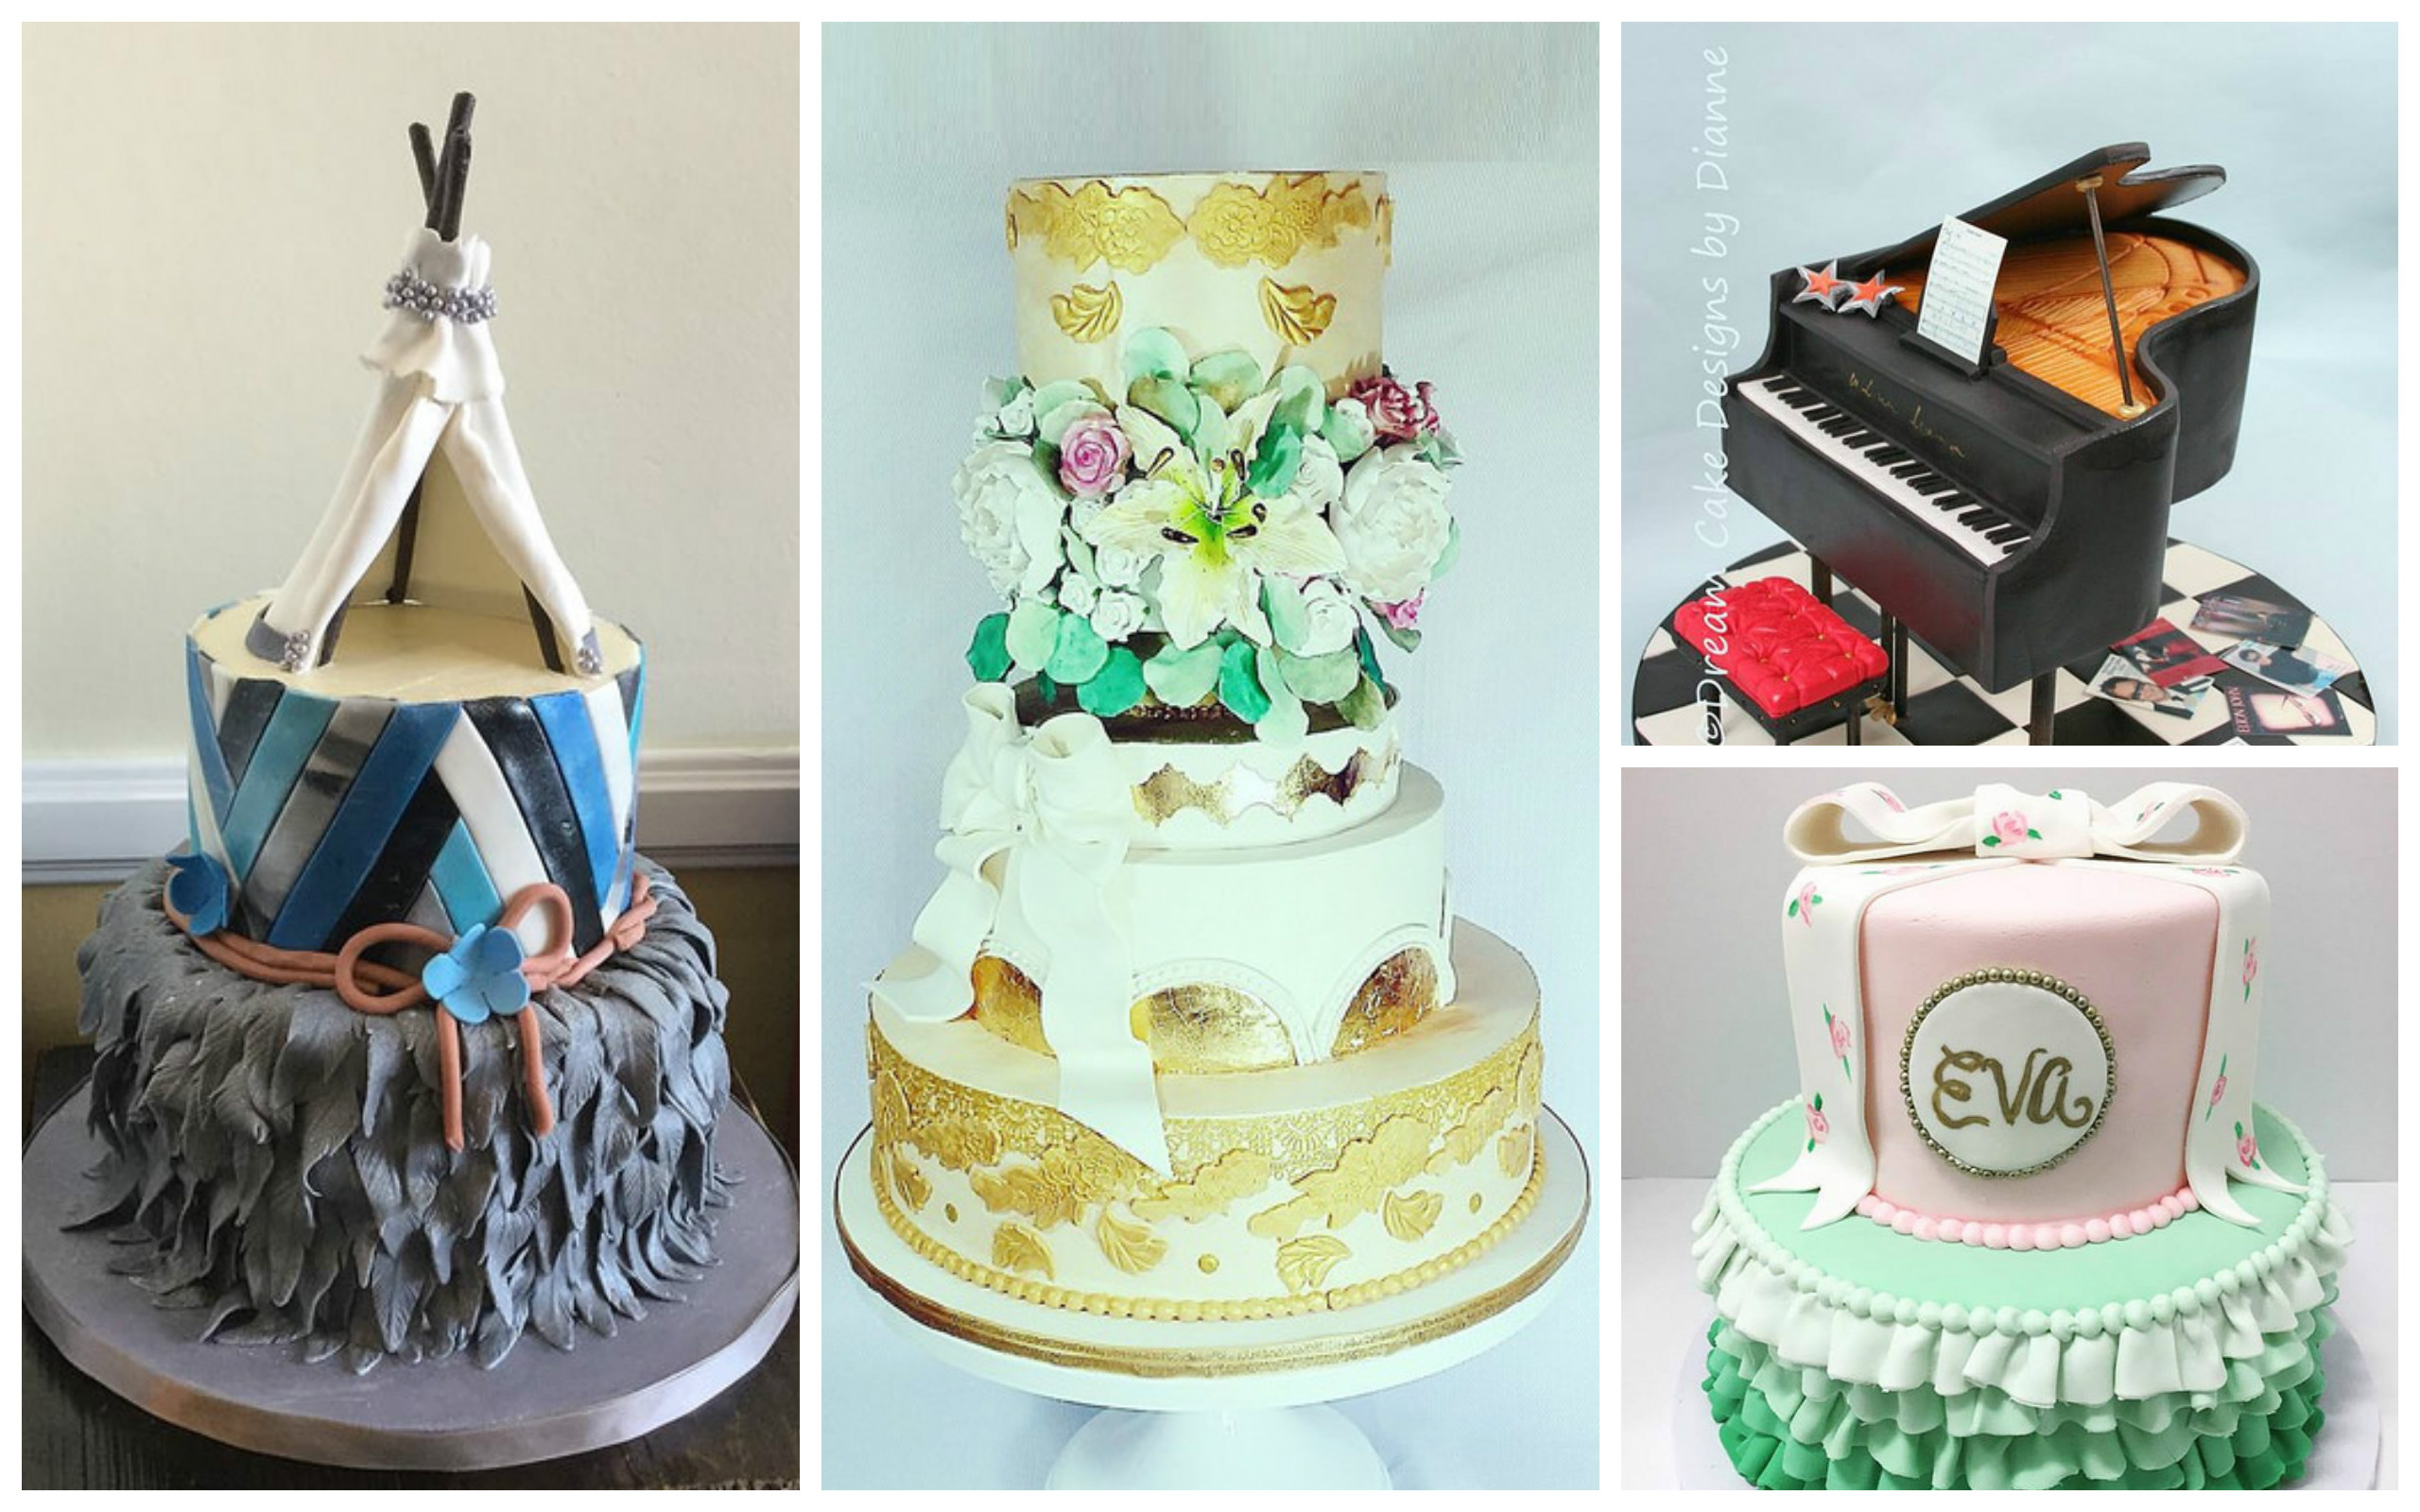 Cake Design Competition : Competition: World s Award-Winning Cake Designer - Page 9 ...